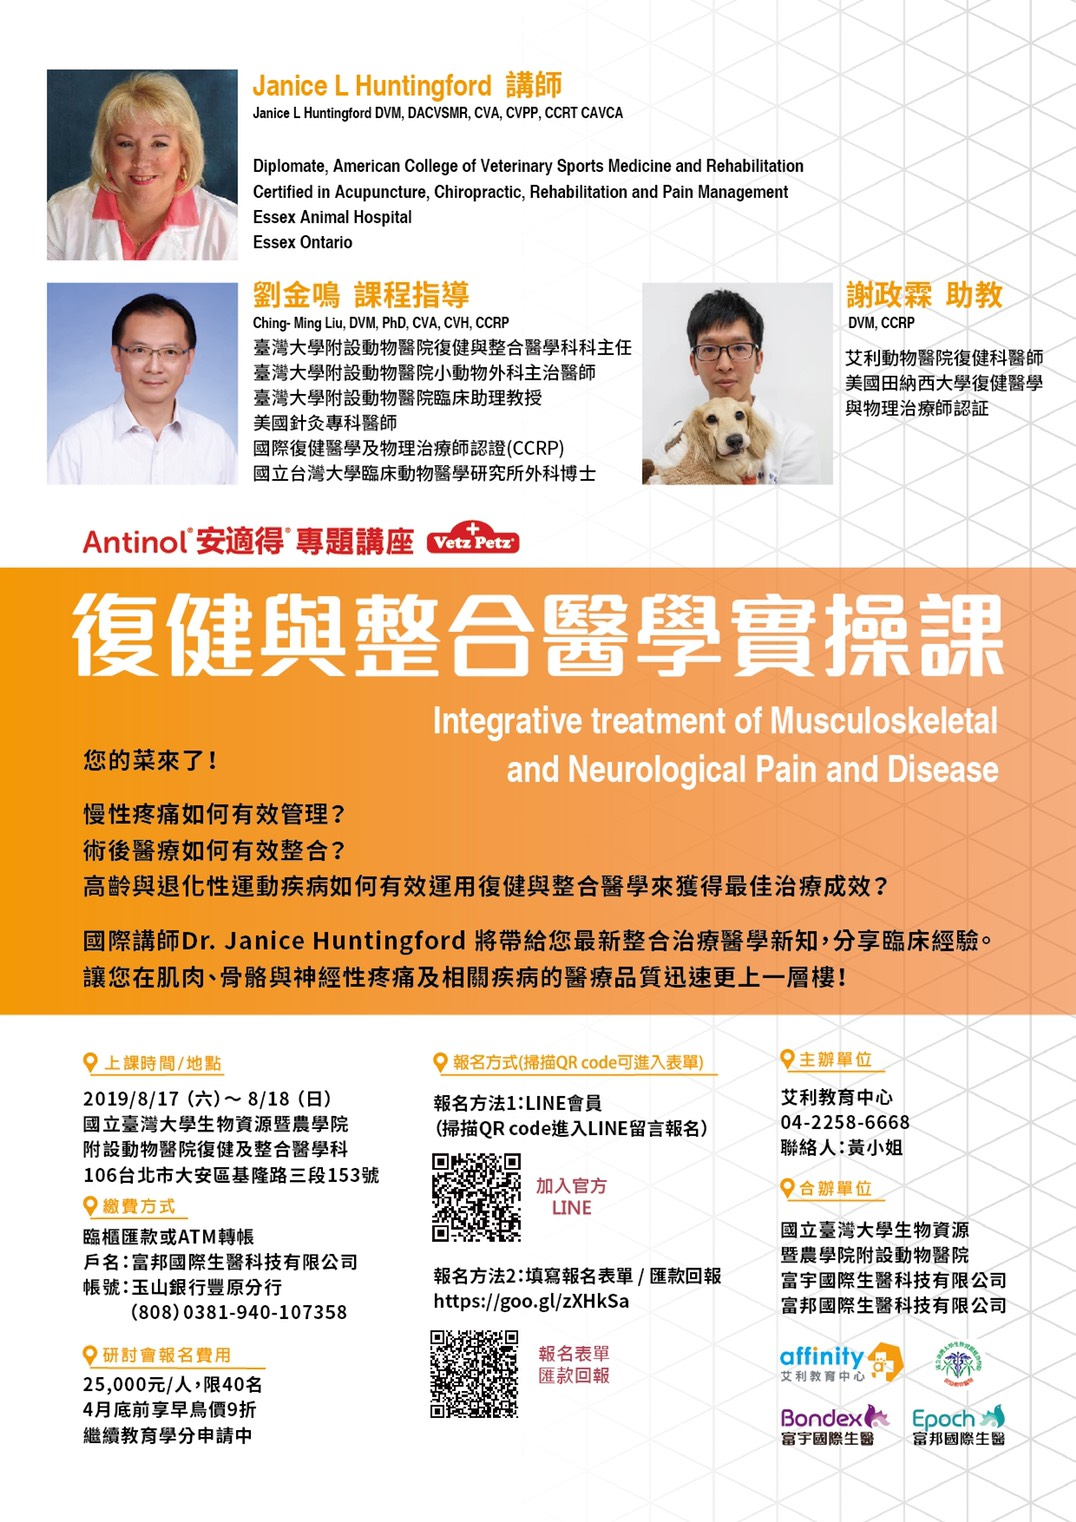 """Integrative treatment of Musculoskeletal and Neurological Pain and Disease"""" - Taipei, Taiwan"""